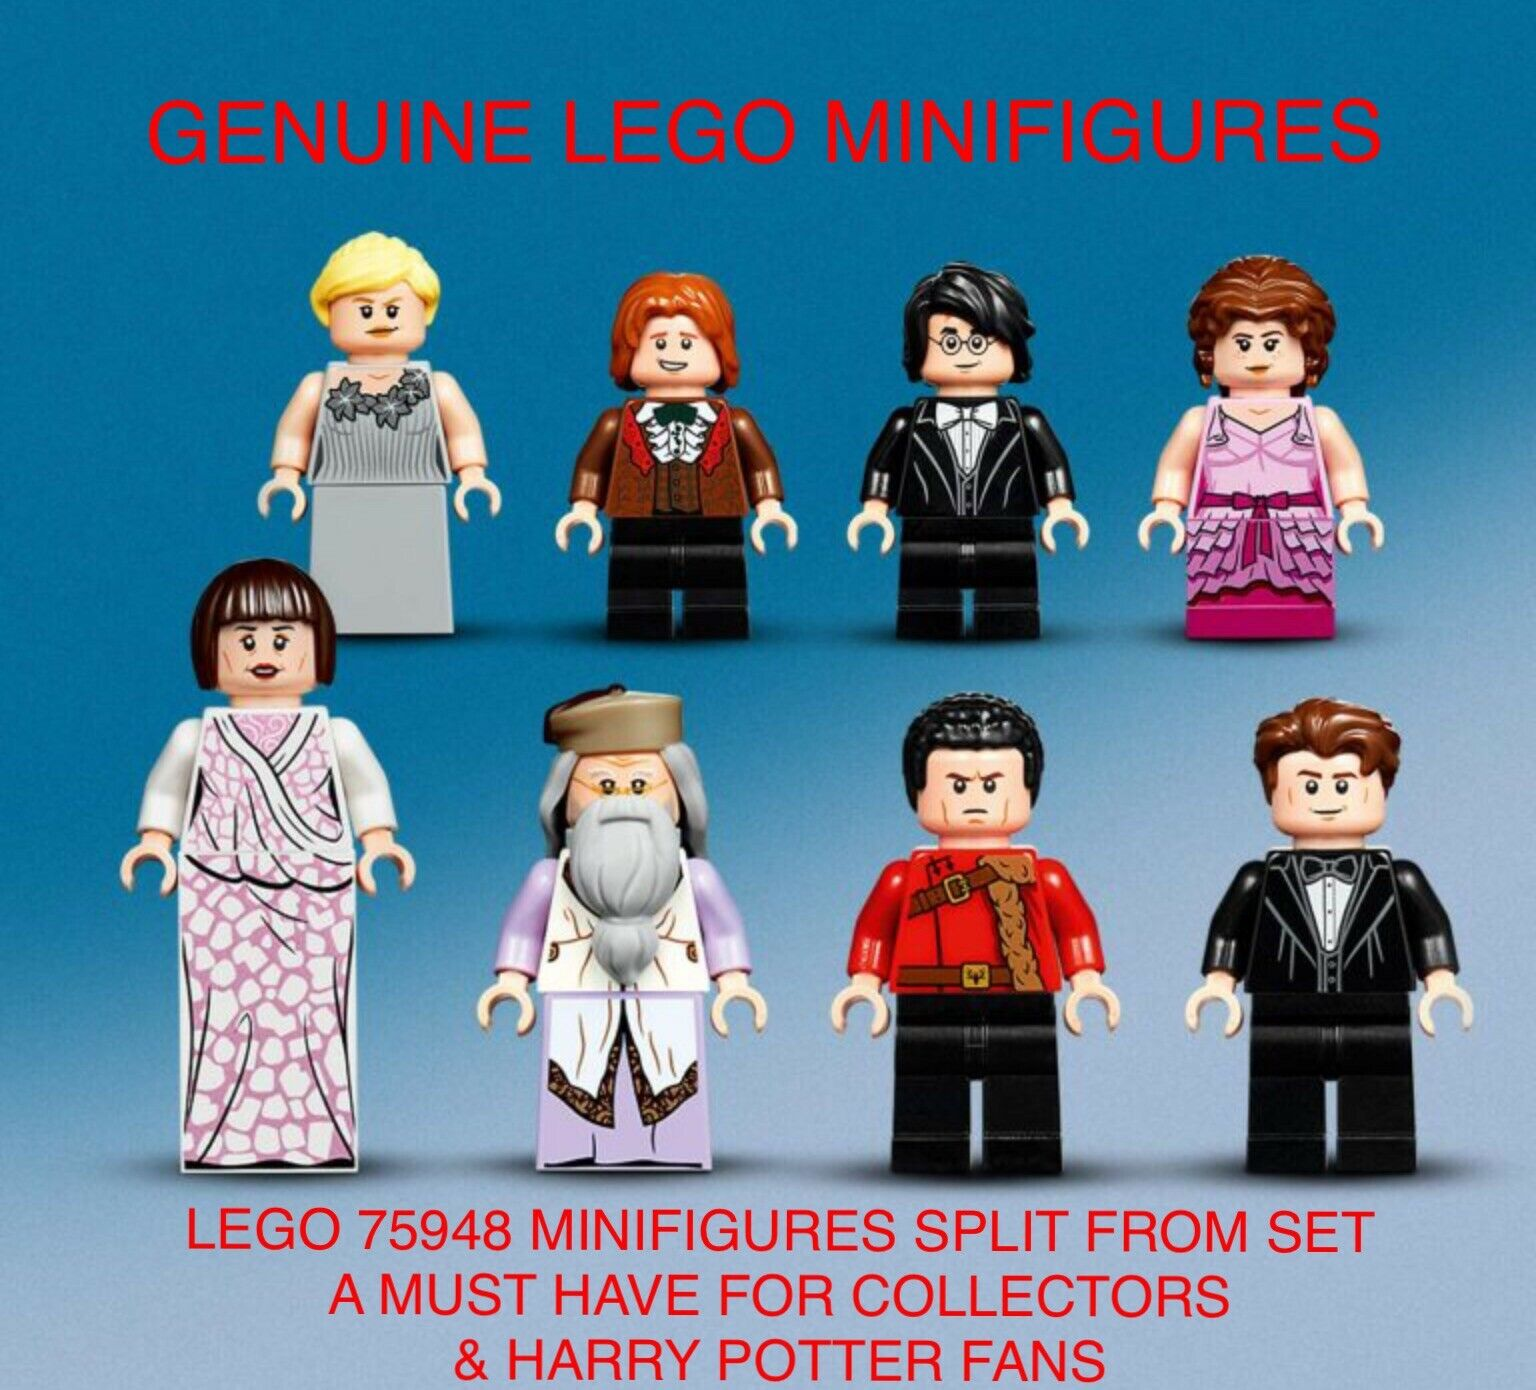 8 X LEGO MINIFIGURES SPLIT FROM SET 75948 - HARRY POTTER. B NEW. MUST HAVE. (D)